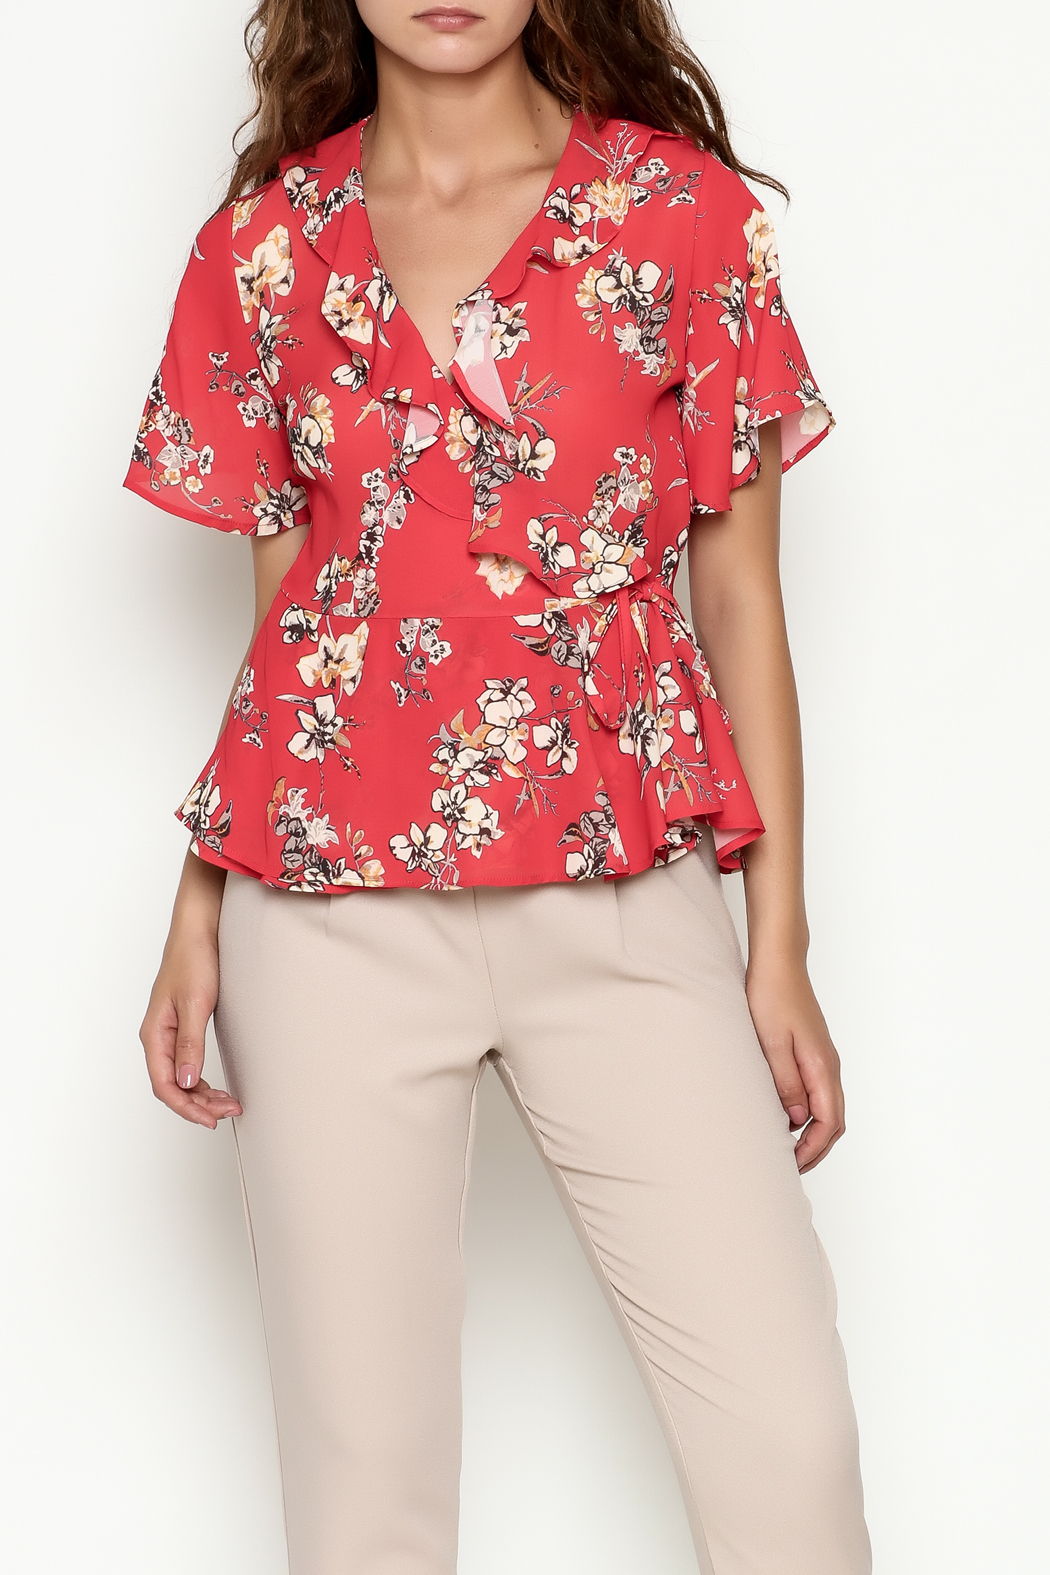 Marvy Fashion Floral Surplice Top - Front Cropped Image